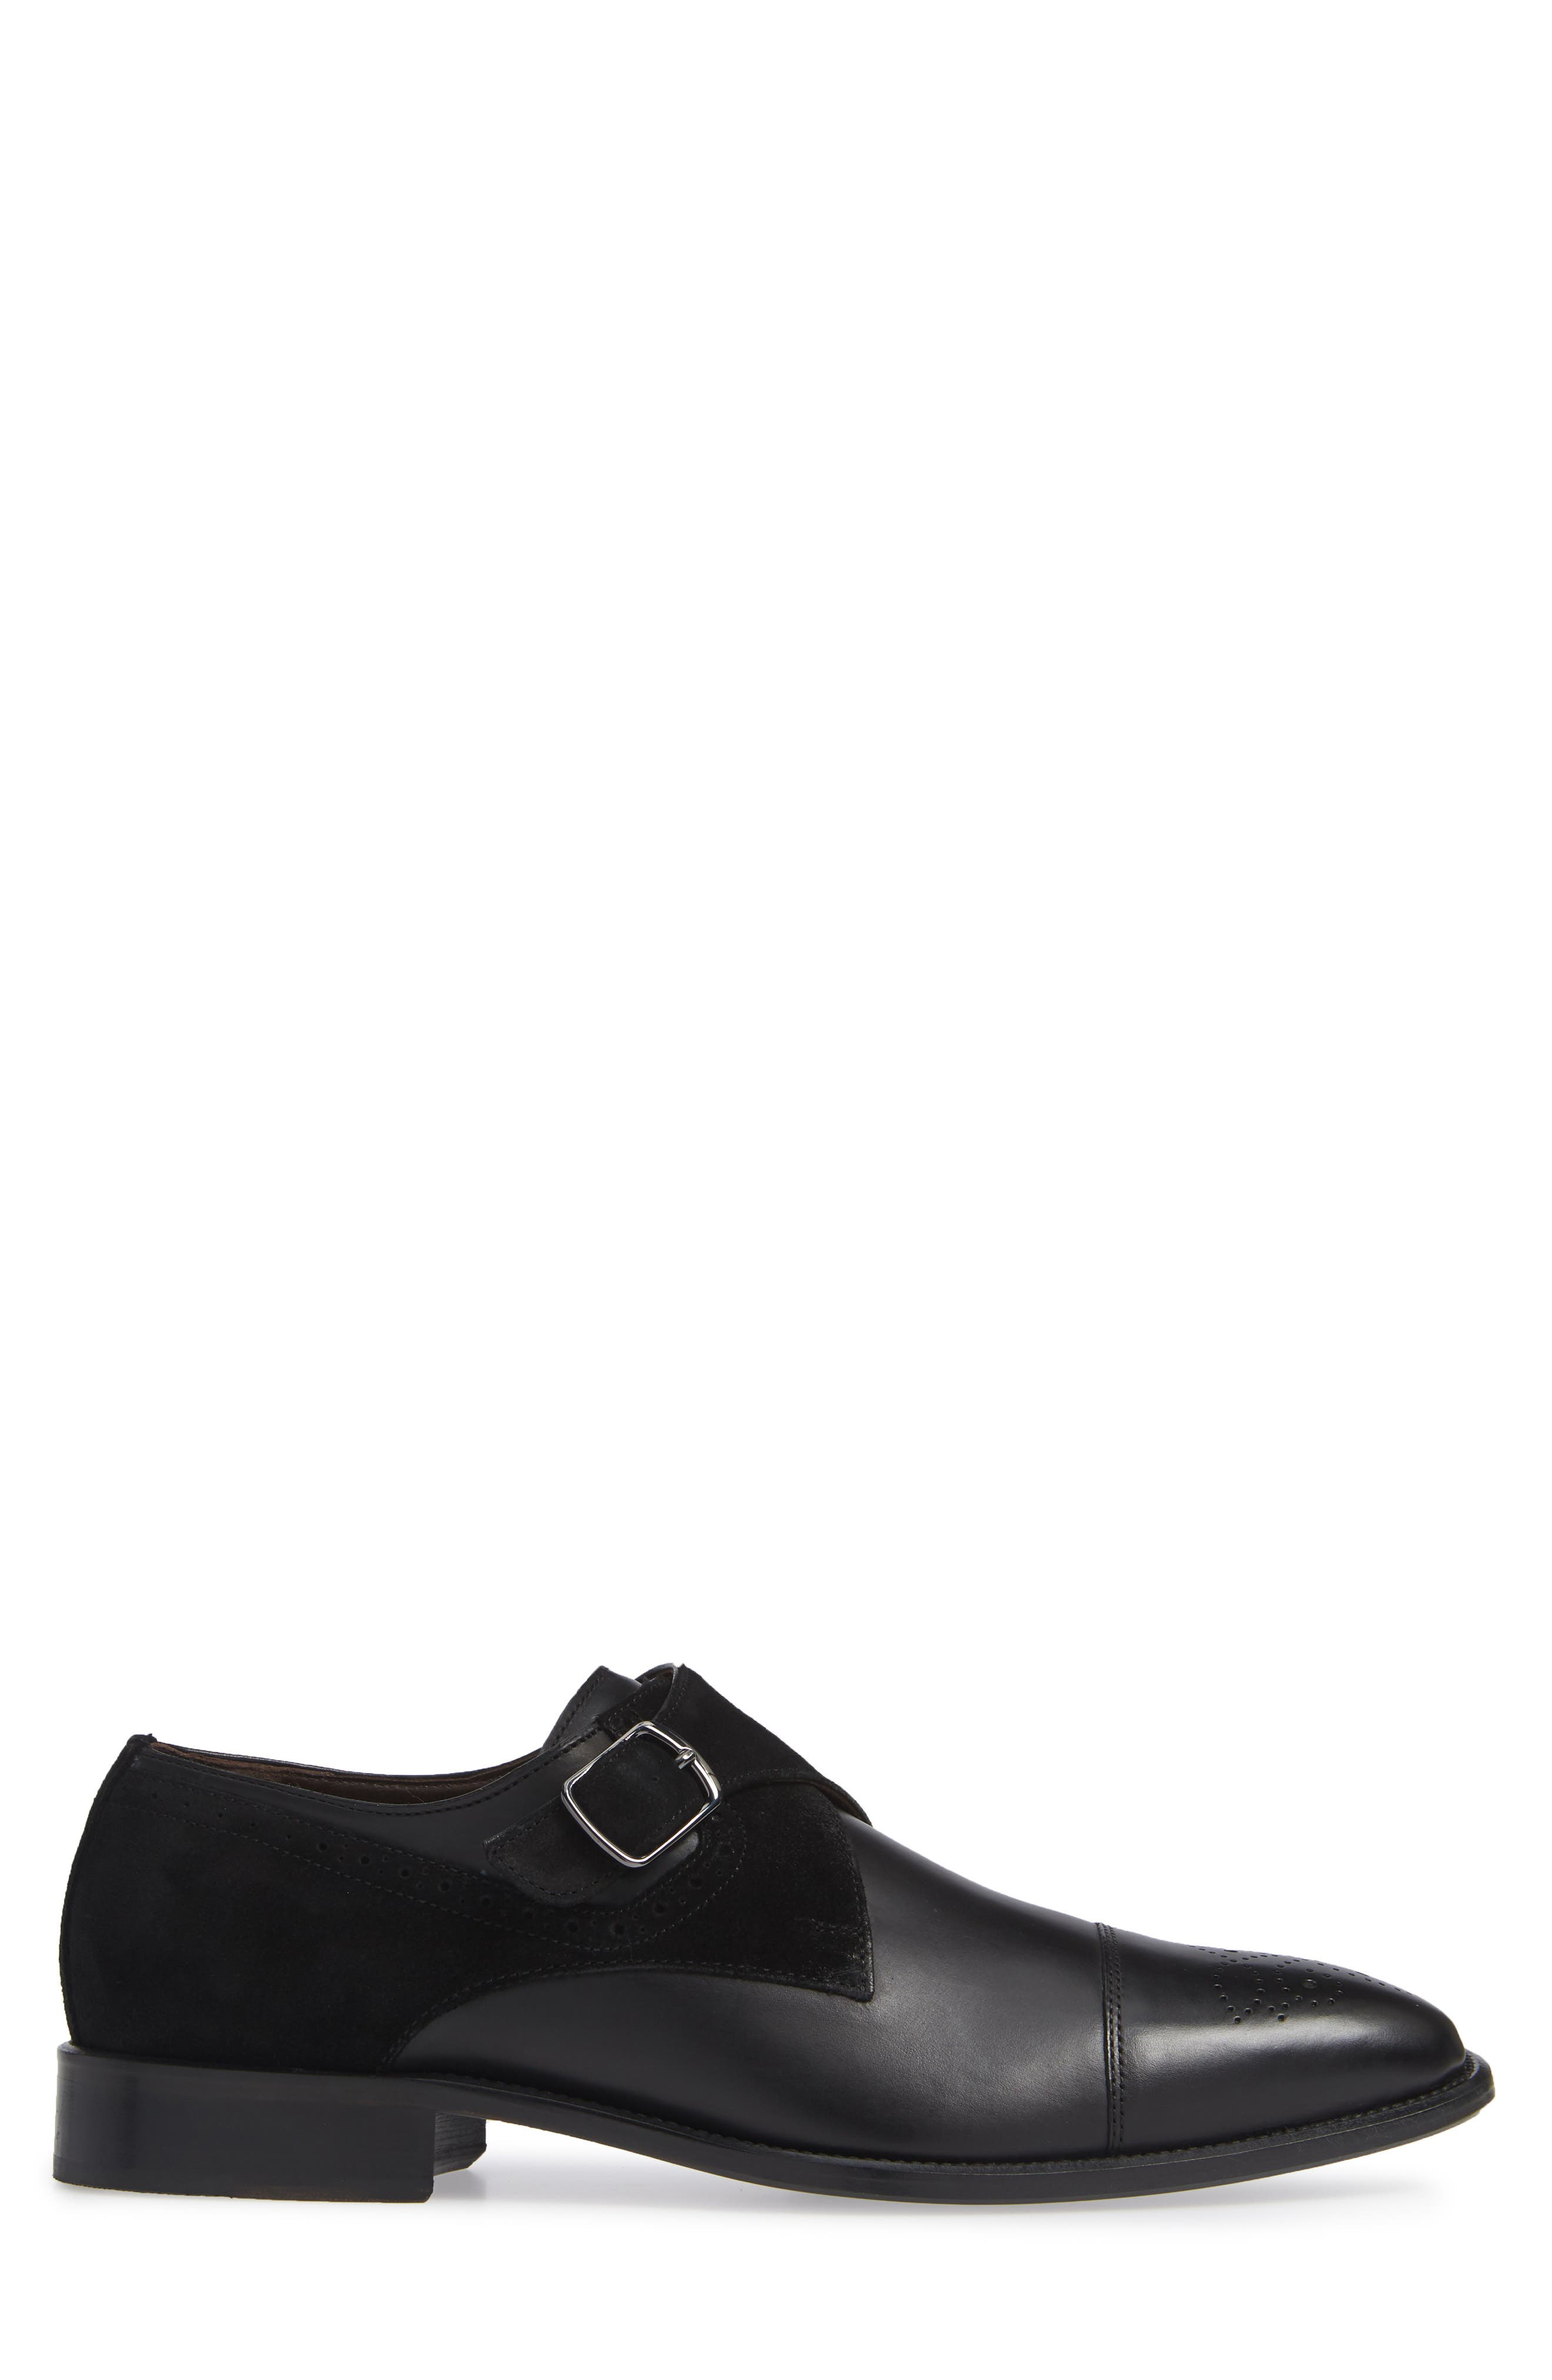 Maxwell Monk Shoe,                             Alternate thumbnail 3, color,                             BLACK SUEDE